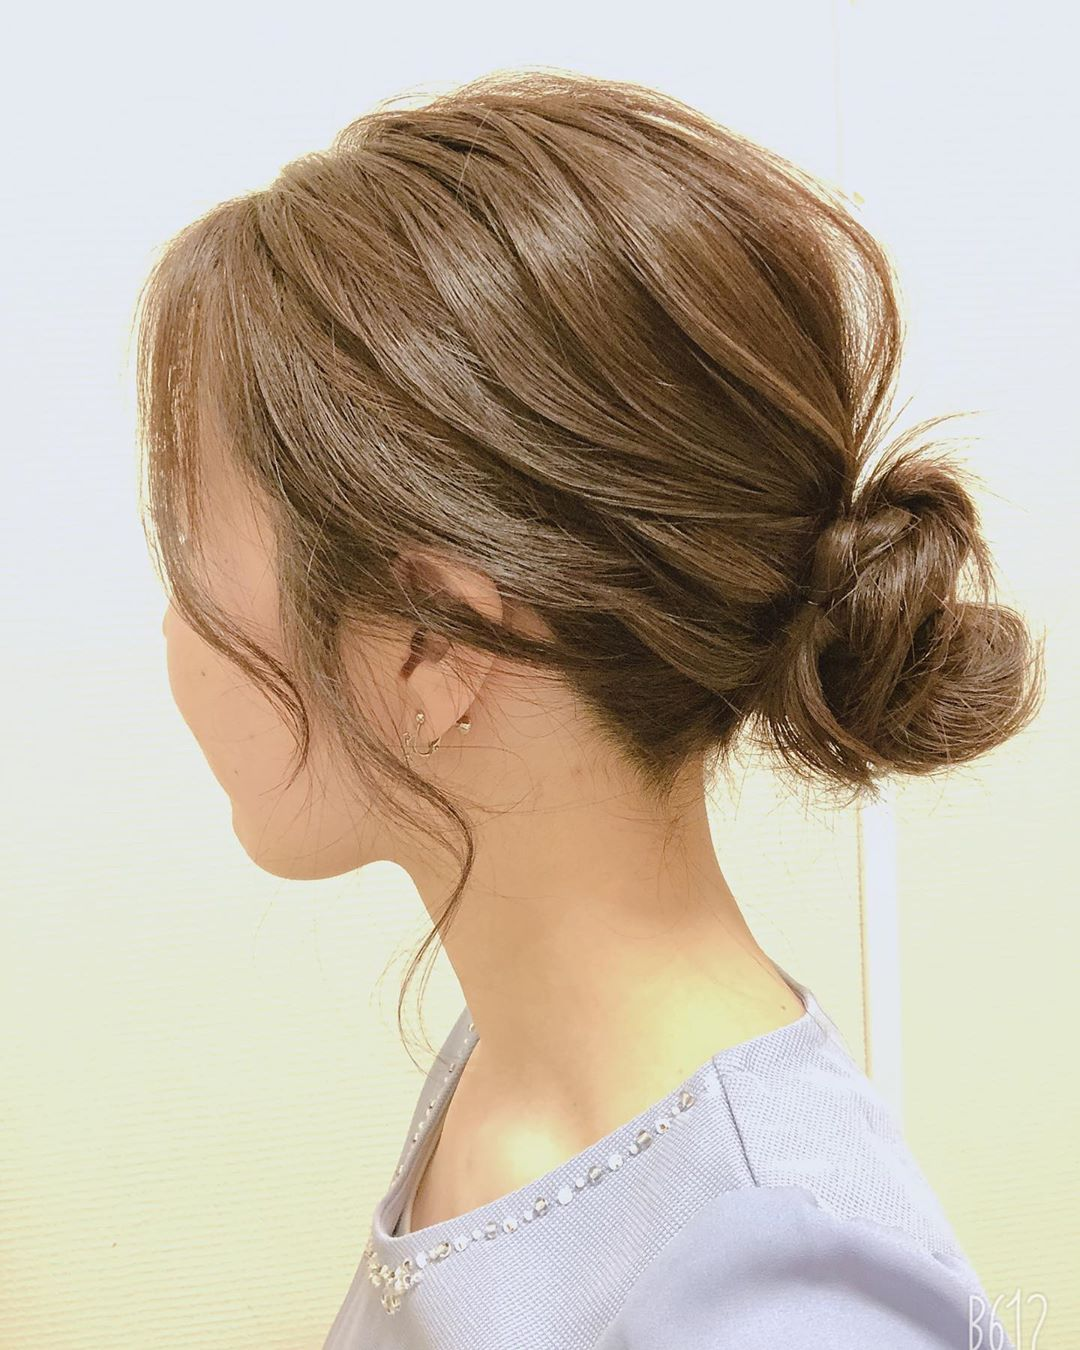 japanese hairstyles - textured messy bun with long side fringe side view